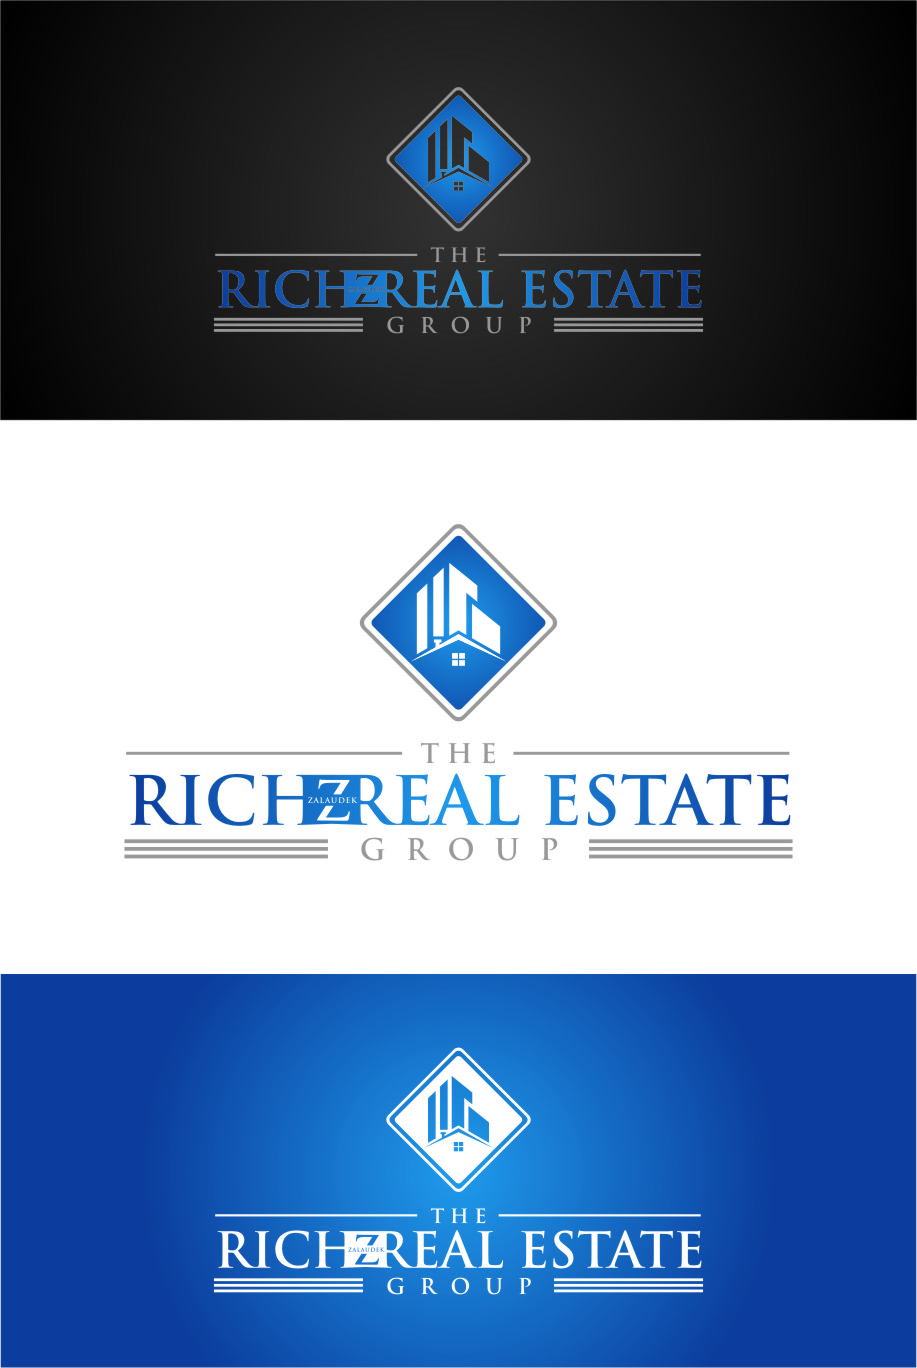 Logo Design by Ngepet_art - Entry No. 47 in the Logo Design Contest The Rich Z. Real Estate Group Logo Design.